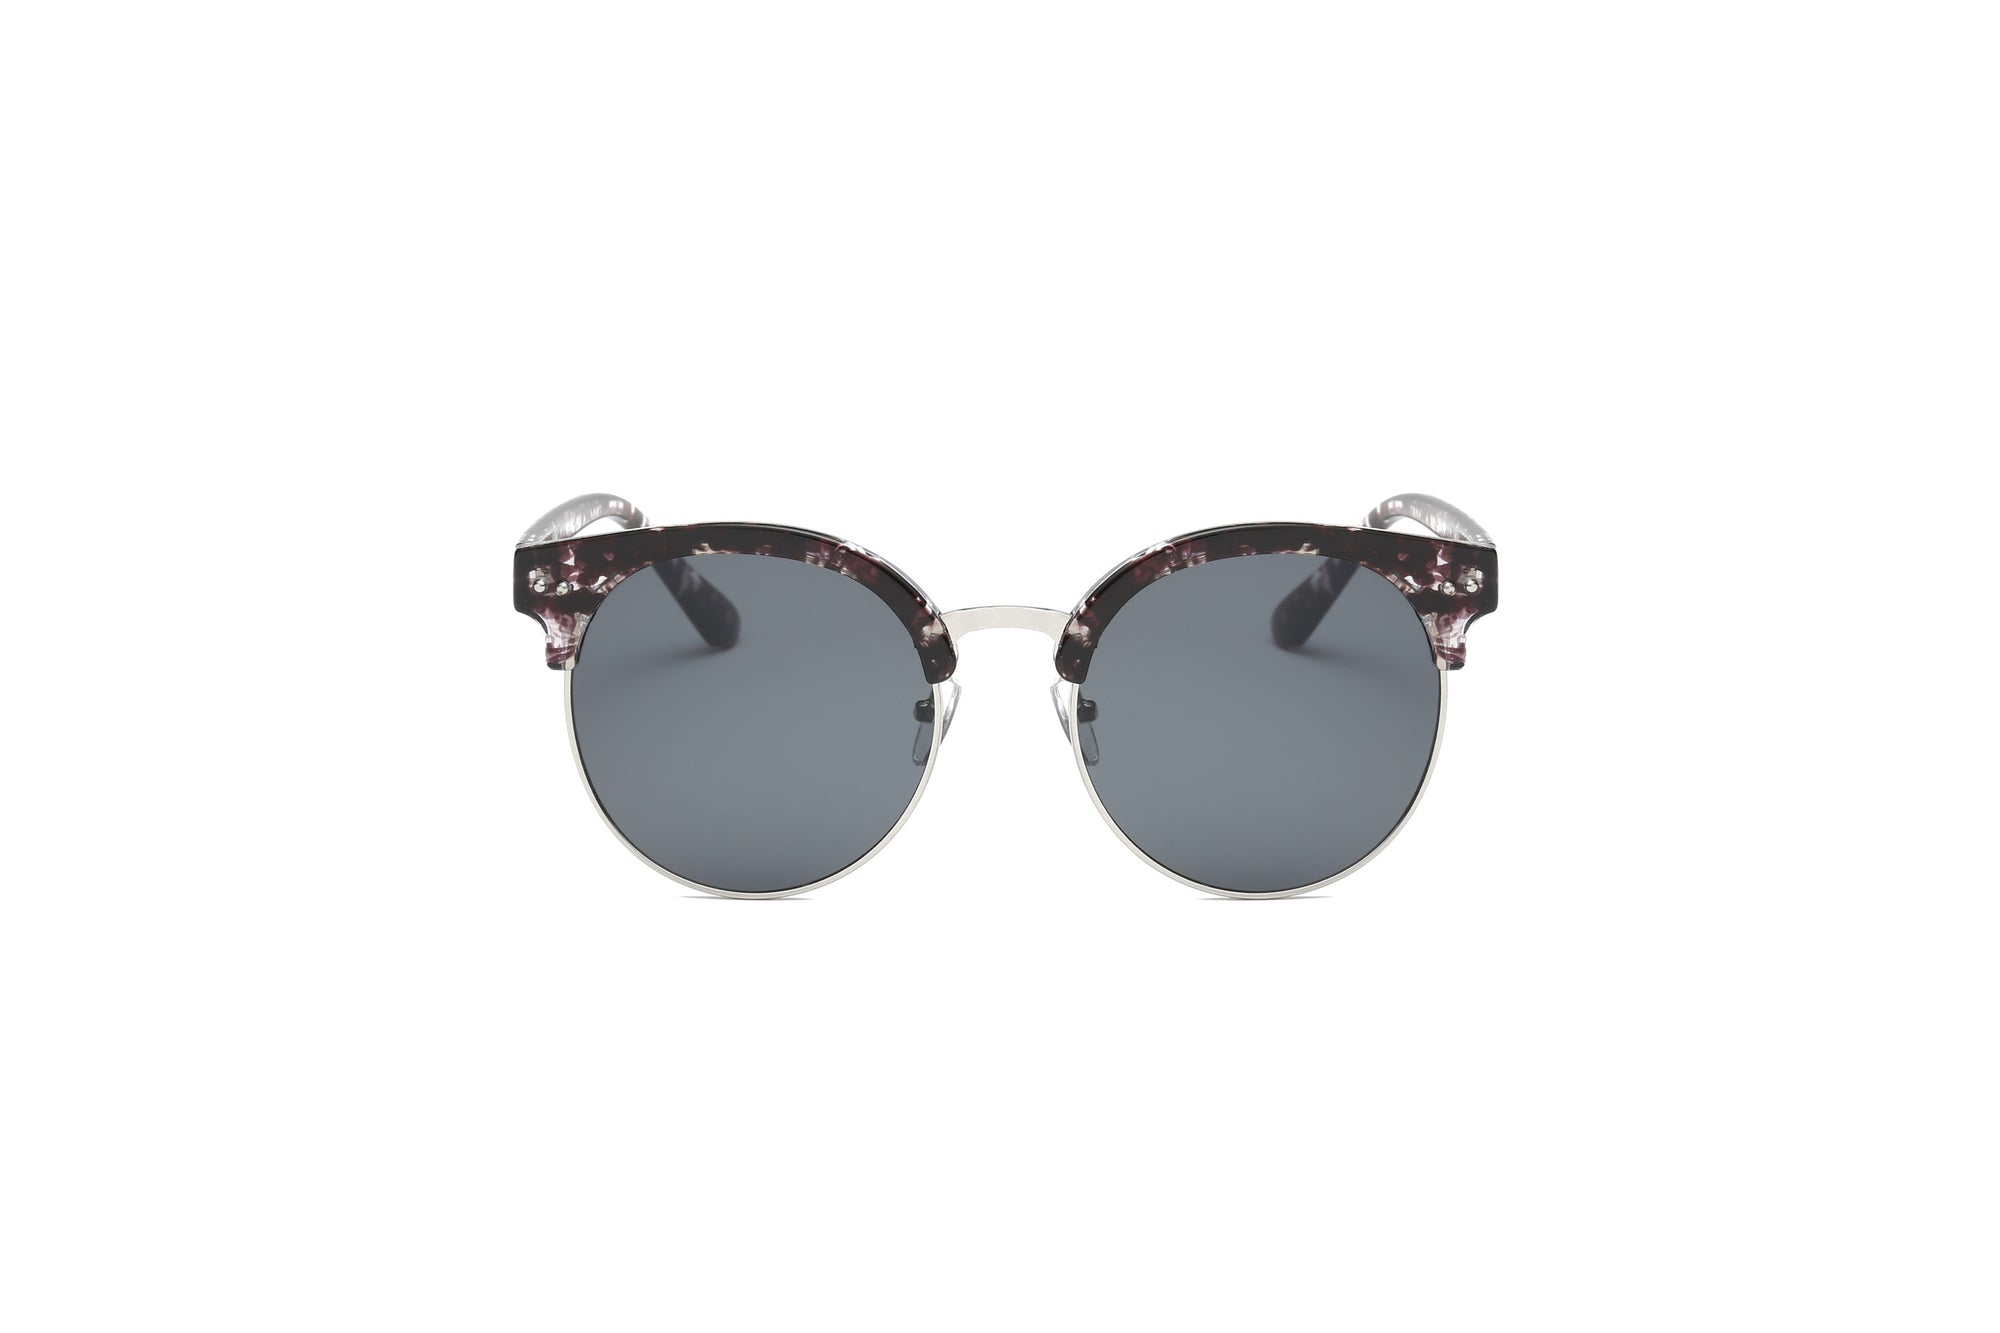 D66 - Retro Fashion Round Clubmaster Flat Lens Sunglasses - Iris Fashion Inc. | Wholesale Sunglasses and Glasses